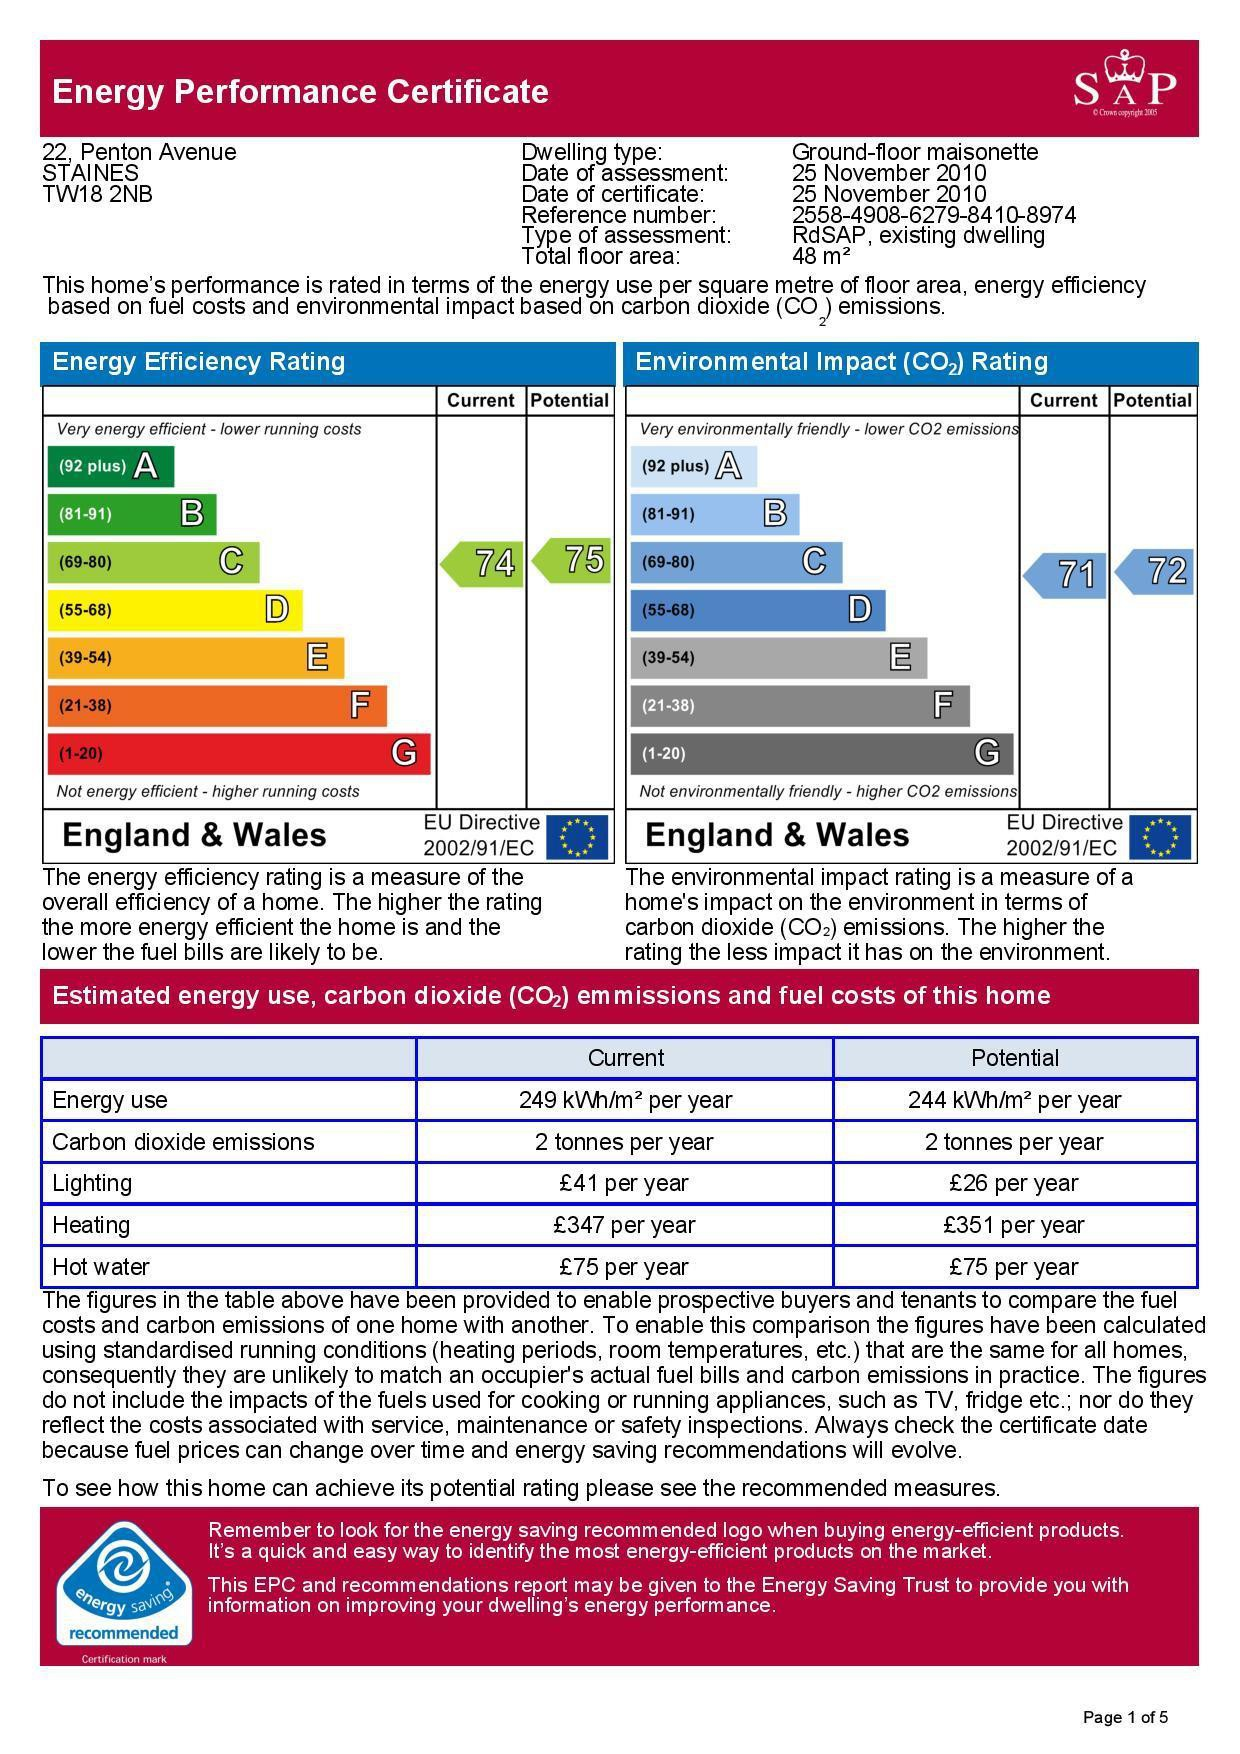 EPC Graph for 22 Penton Avenue, Staines-Upon-Thames, Middlesex TW18 2NB